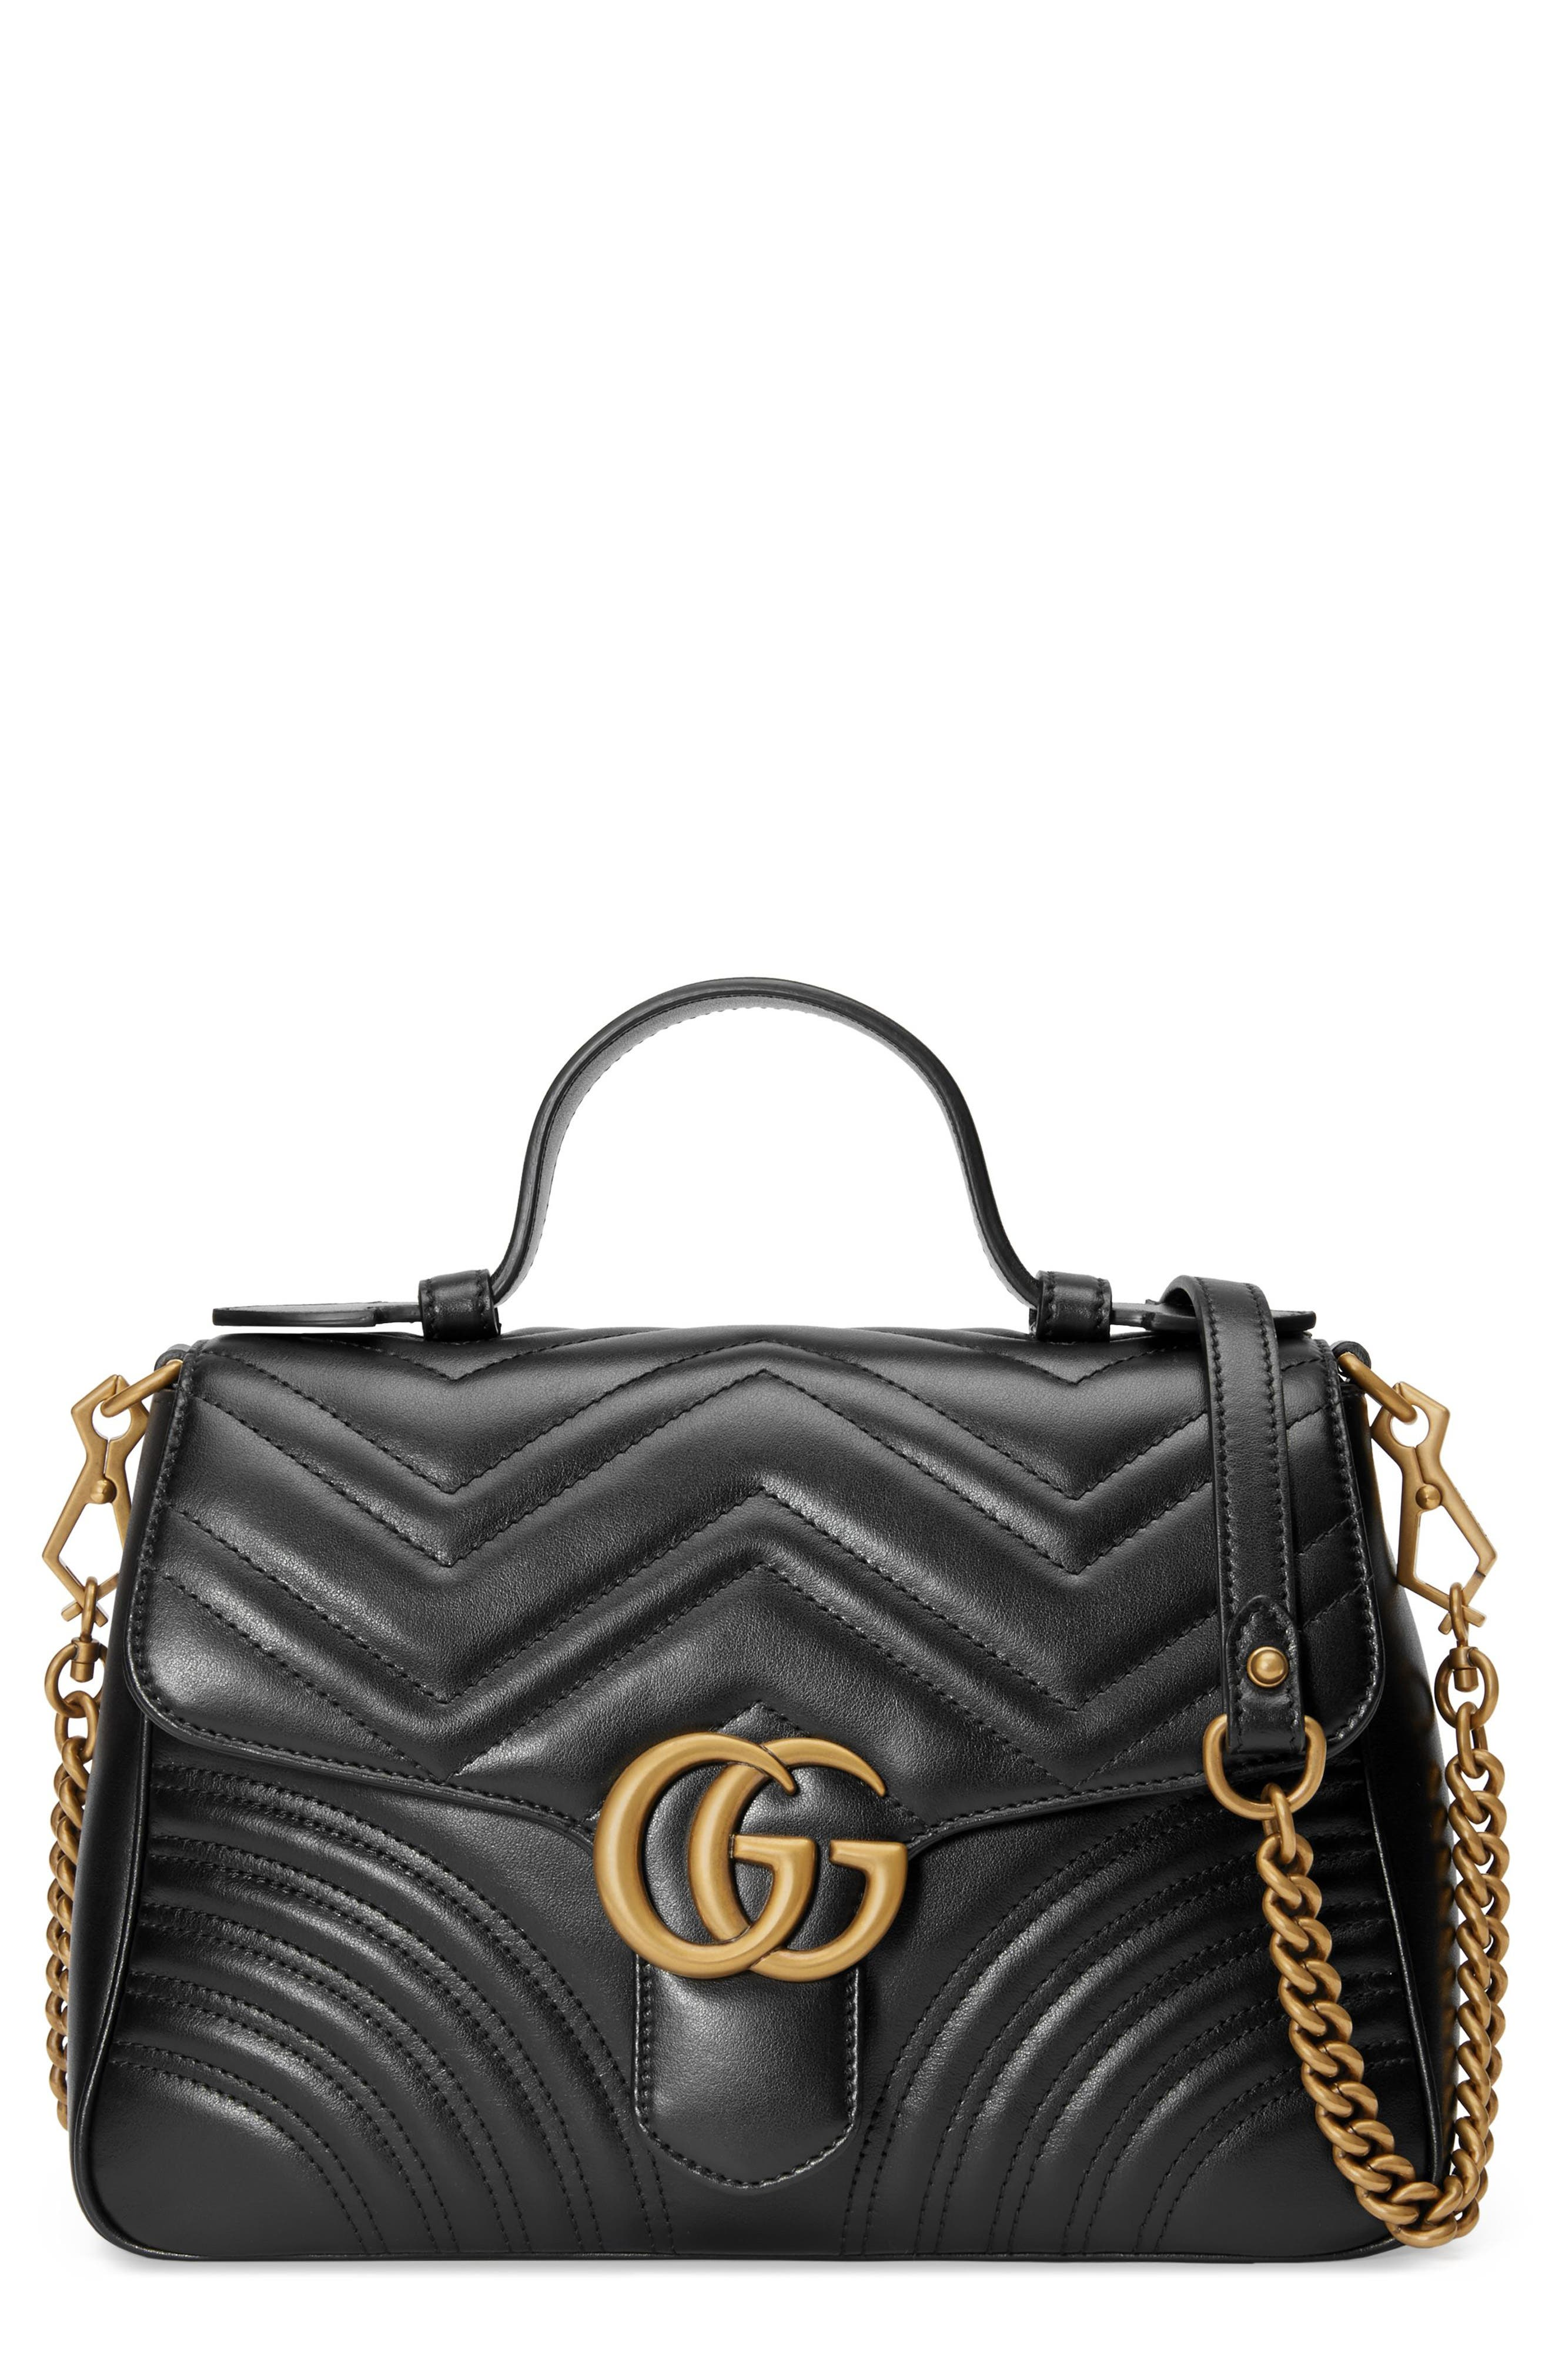 Gucci Small GG Marmont 2.0 Matelassé Leather Top Handle Bag